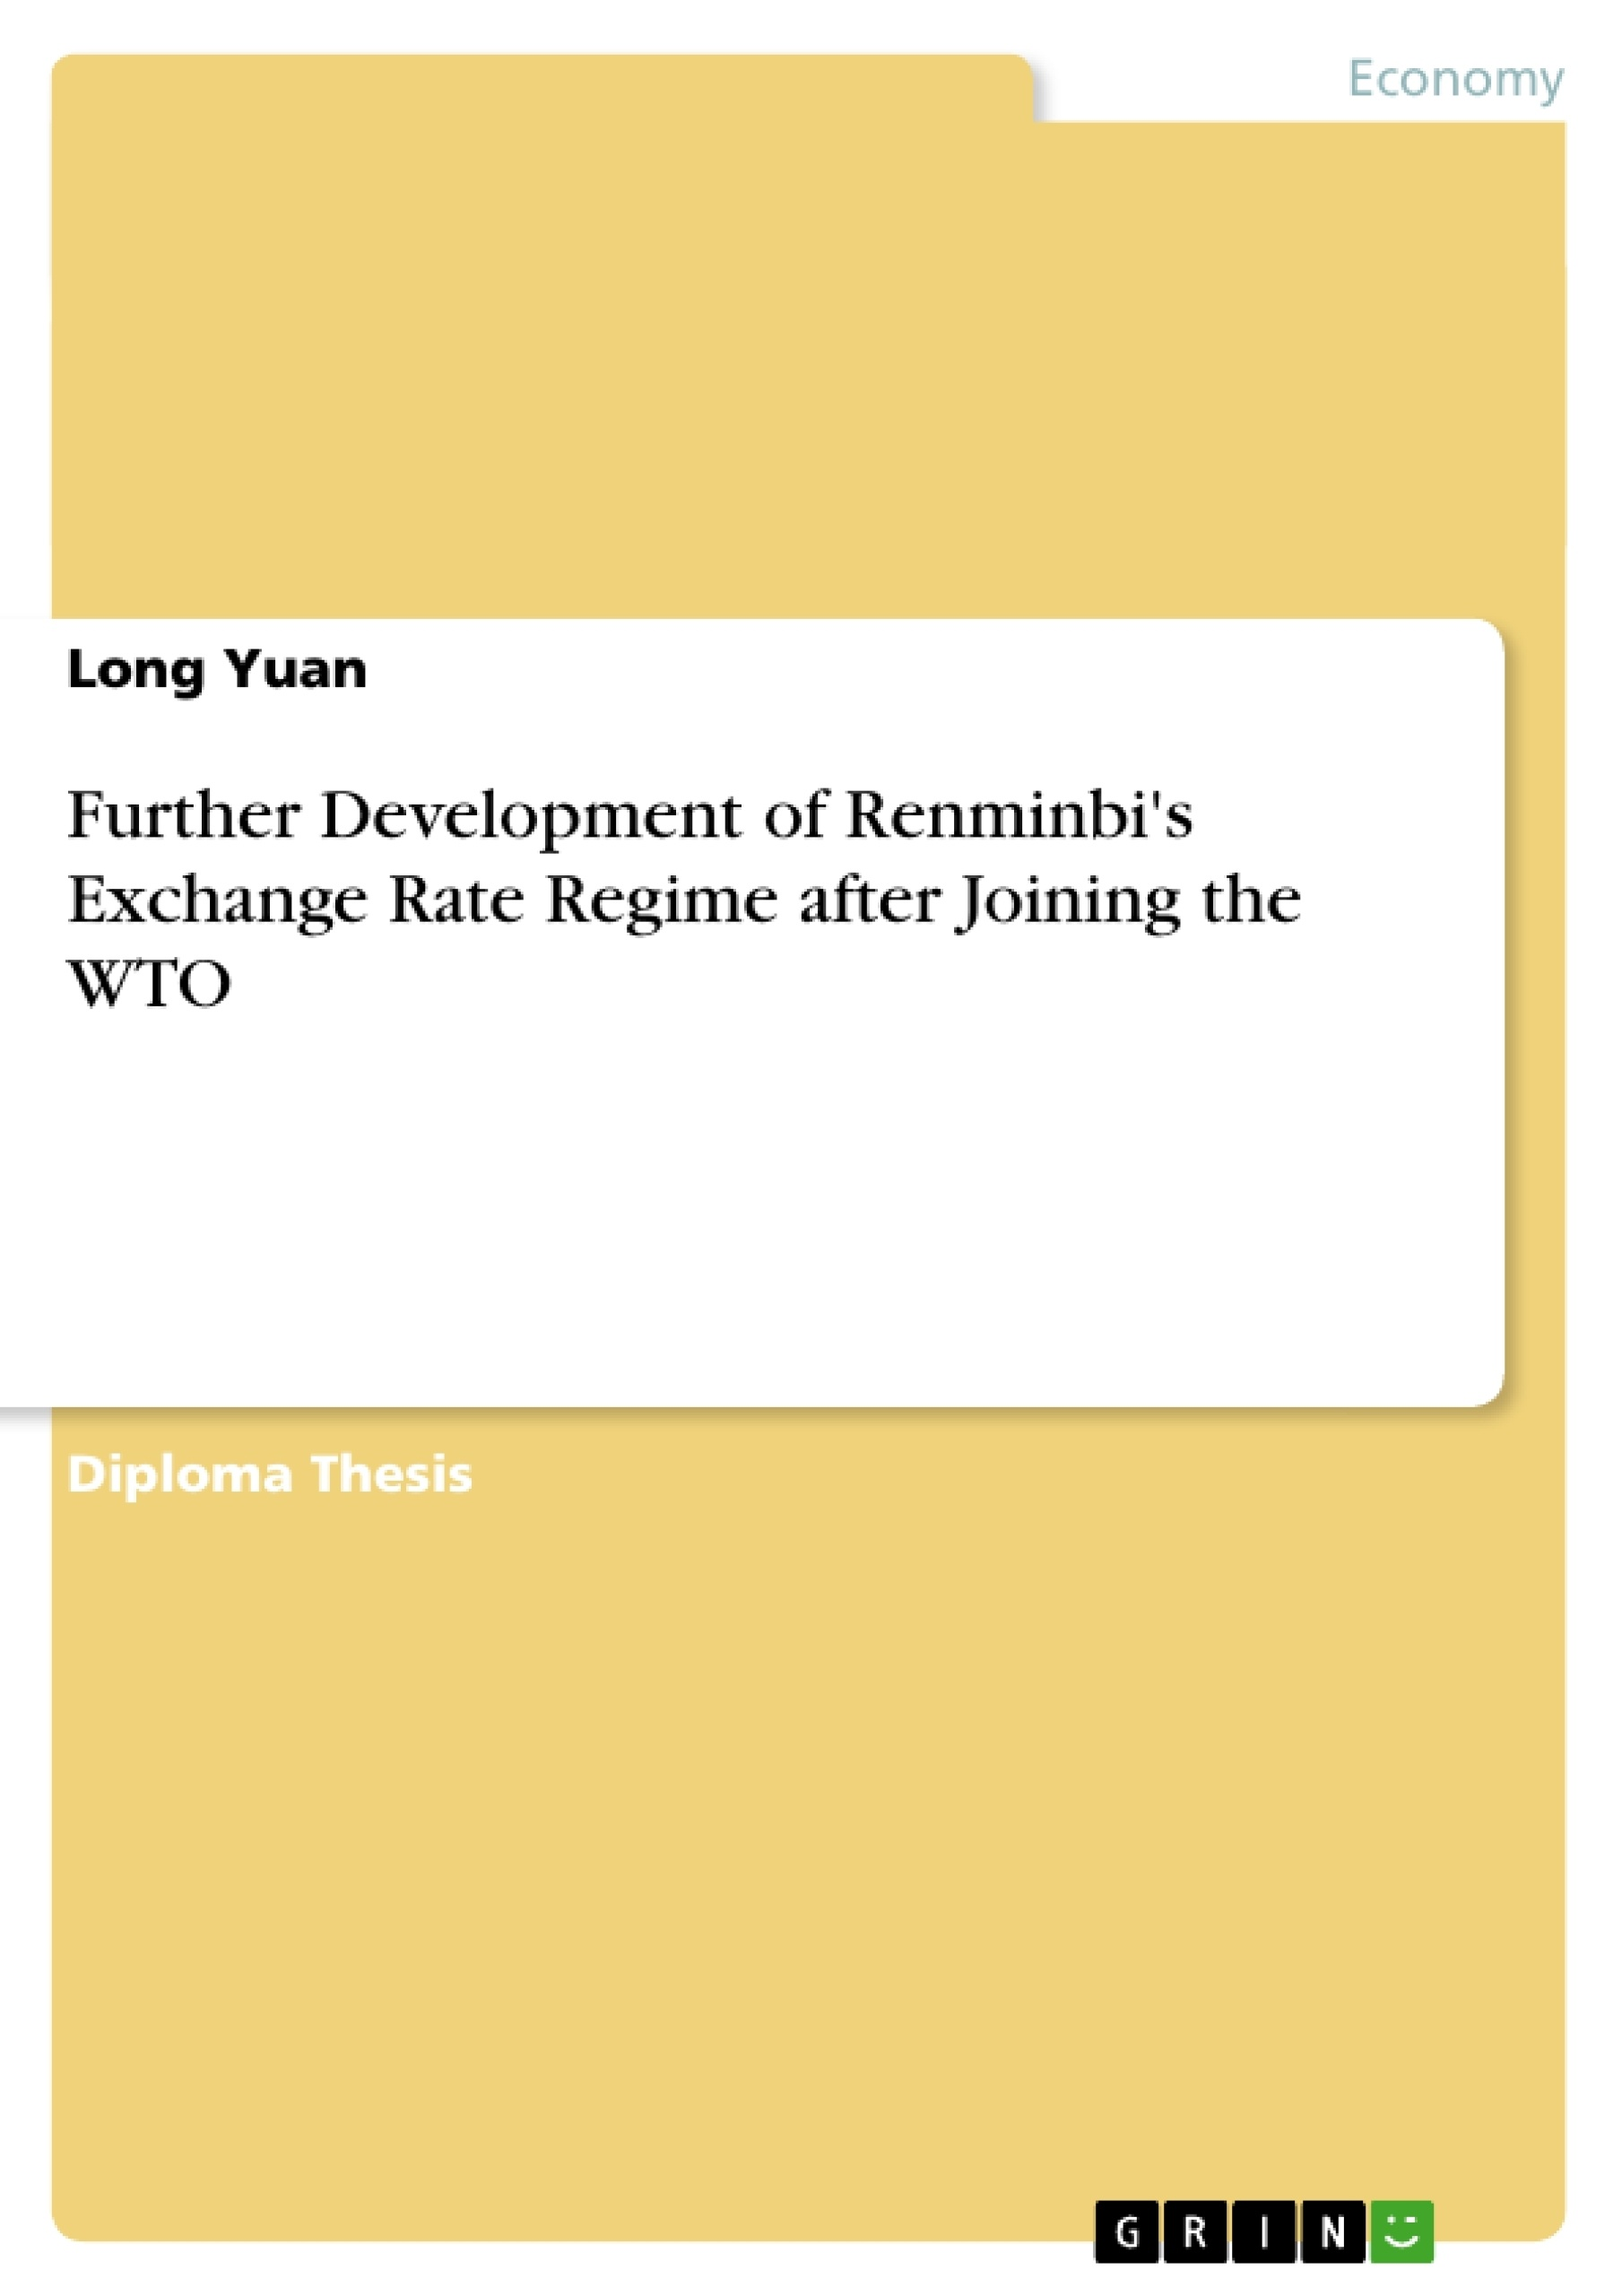 Title: Further Development of Renminbi's Exchange Rate Regime after Joining the WTO